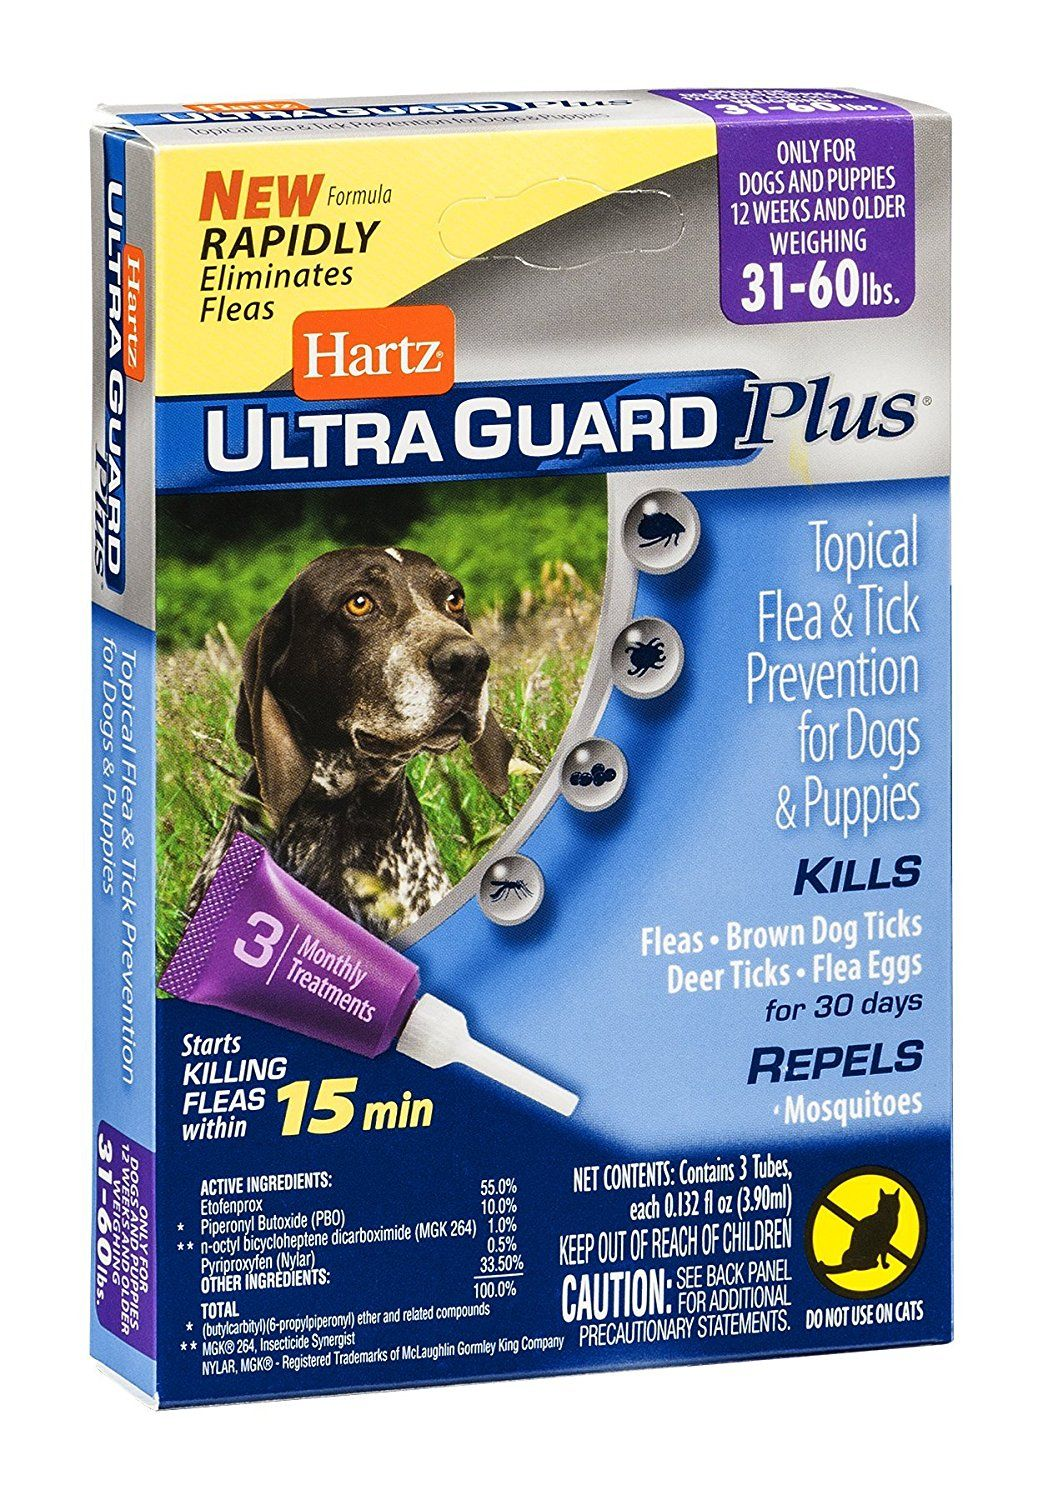 Hartz Ultra Guard Plus Flea Drops 31 60 Lbs You Can Find More Details By Visiting The Image Link T Dog Training Pads Ticks On Dogs Tick Treatment For Dogs